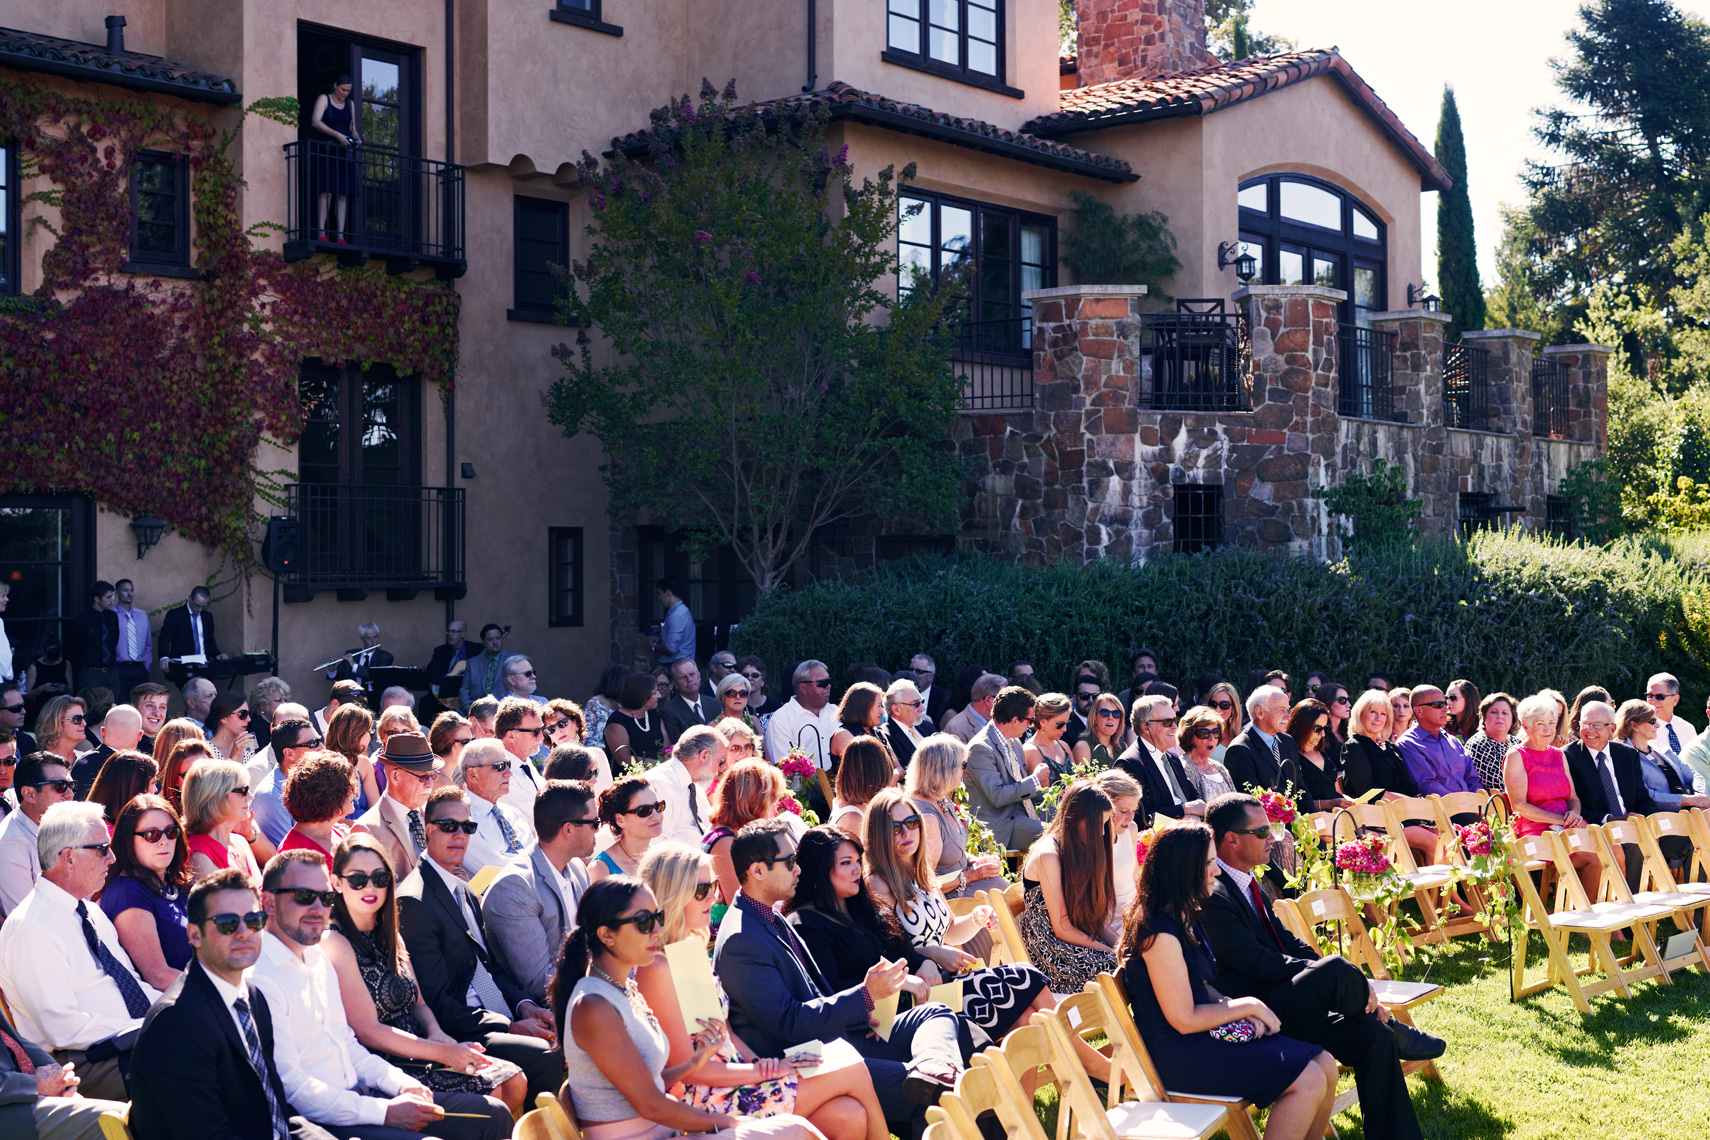 Wedding ceremony at private estate Palo Alto, California